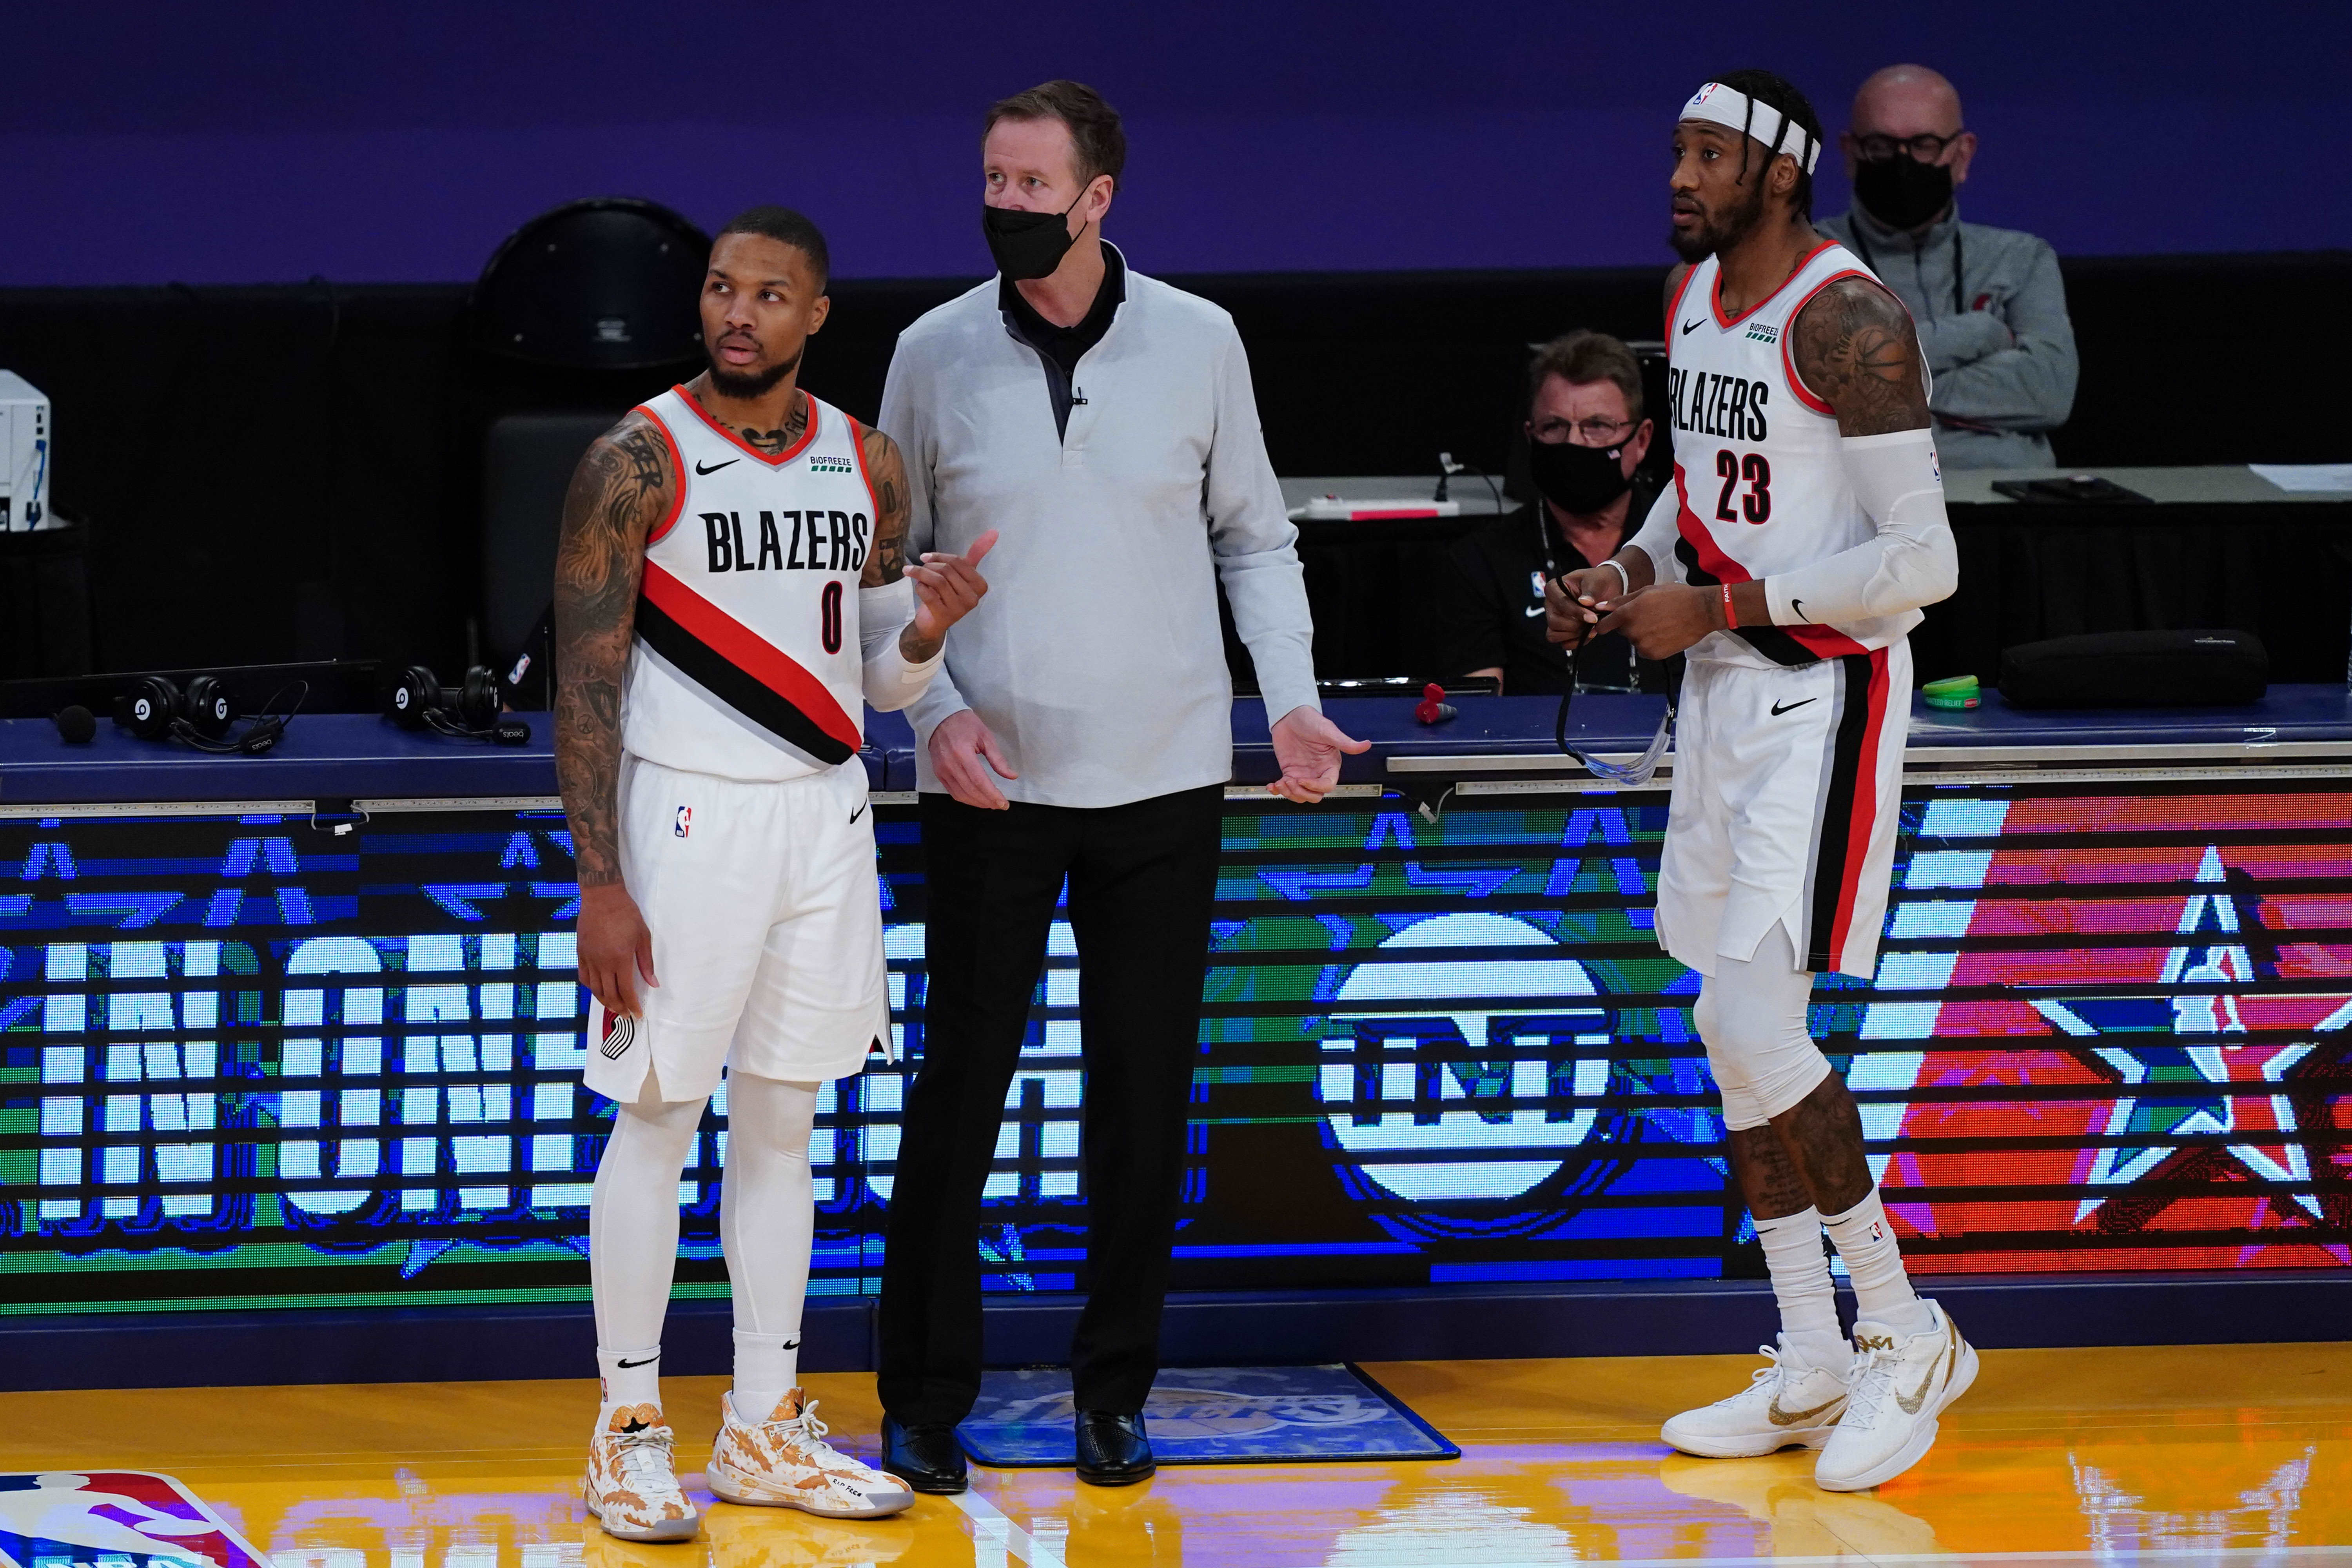 Portland Trail Blazers part ways with coach Terry Stotts after nine seasons